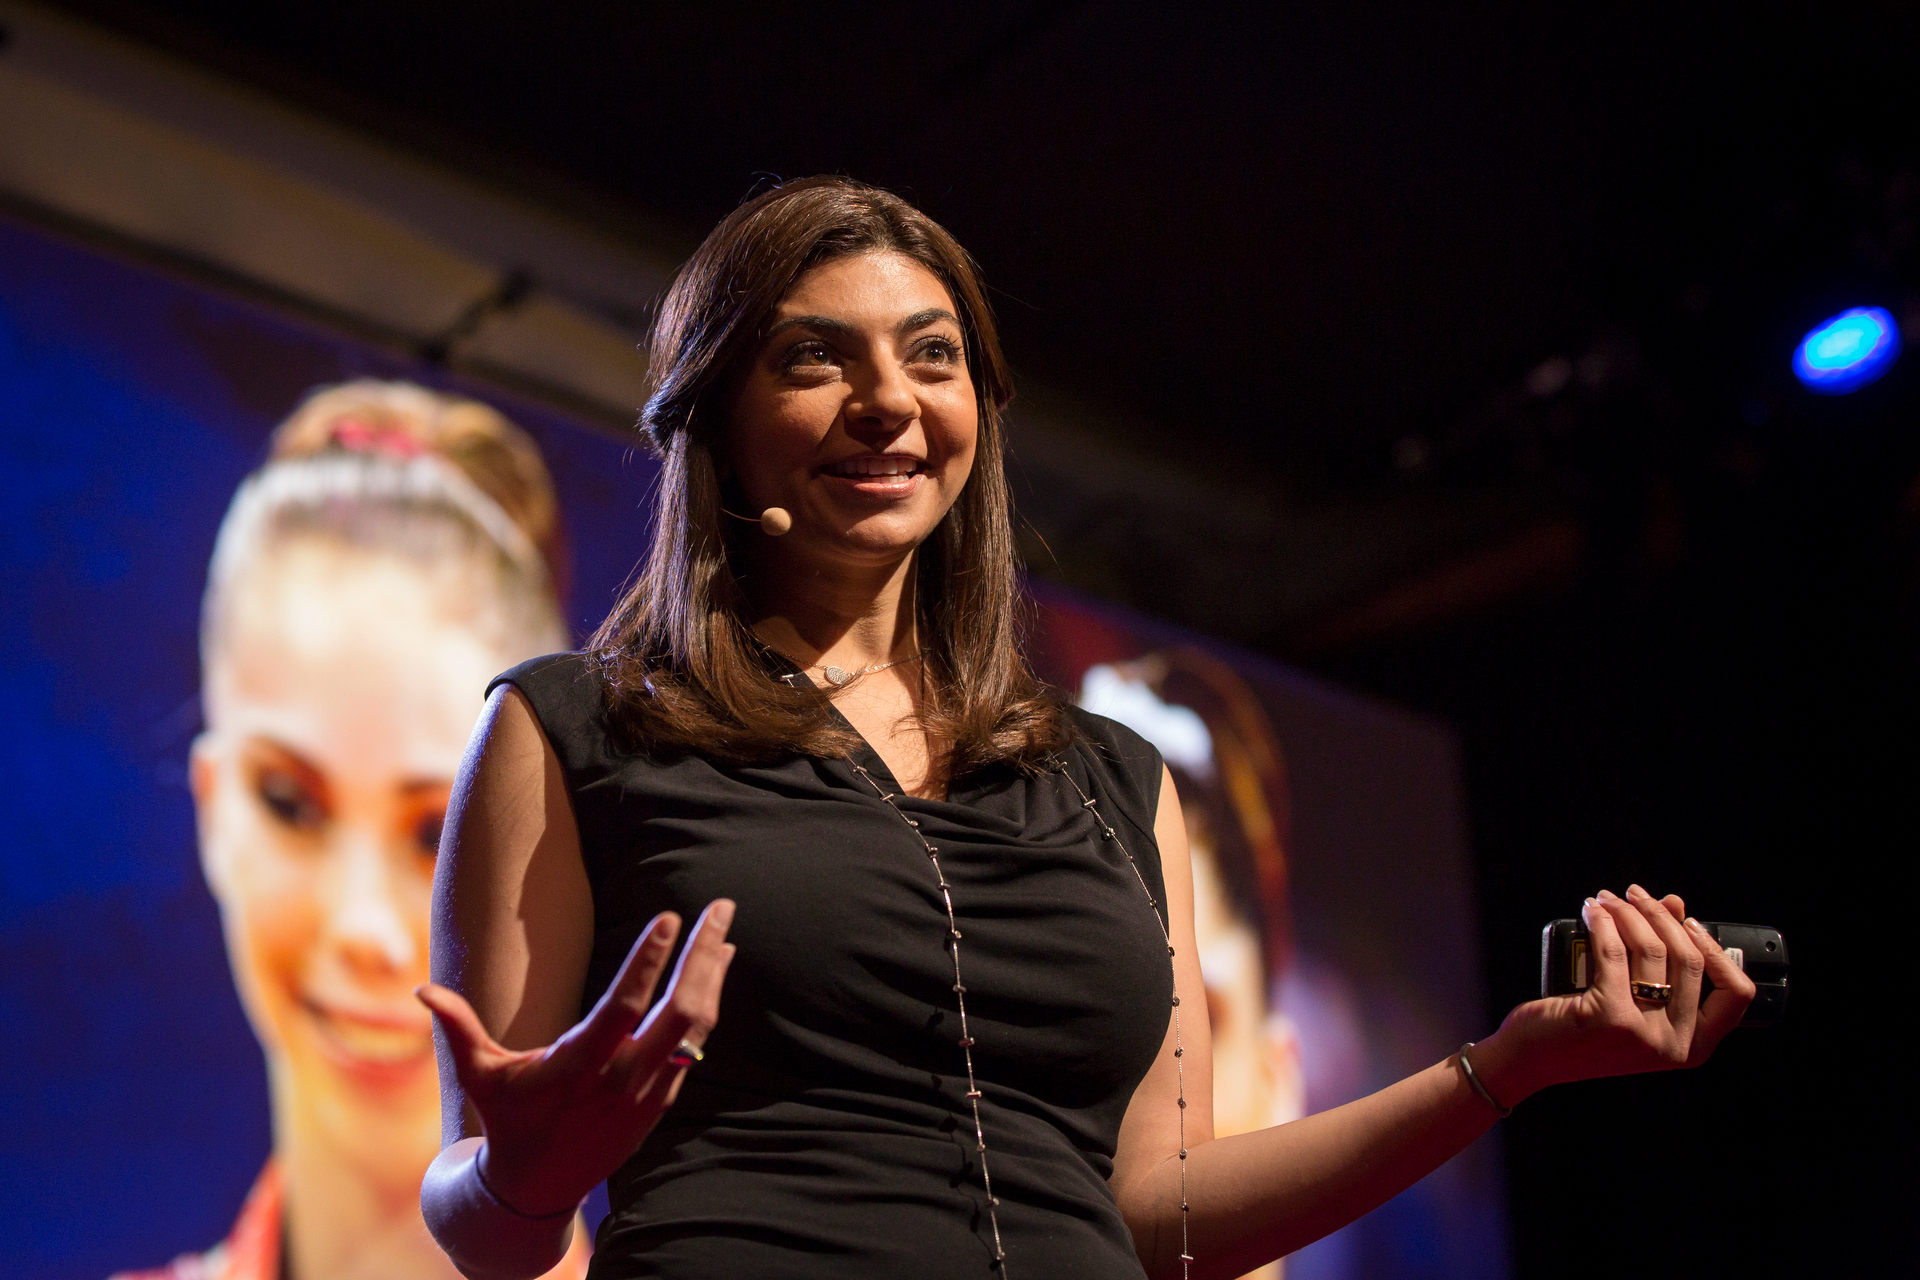 Rana El Kaliouby speaks at TEDWomen2015 - Momentum, Session 1, May 28, 2015, Monterey Conference Center, Monterey, California, USA. Photo: Marla Aufmuth/TED